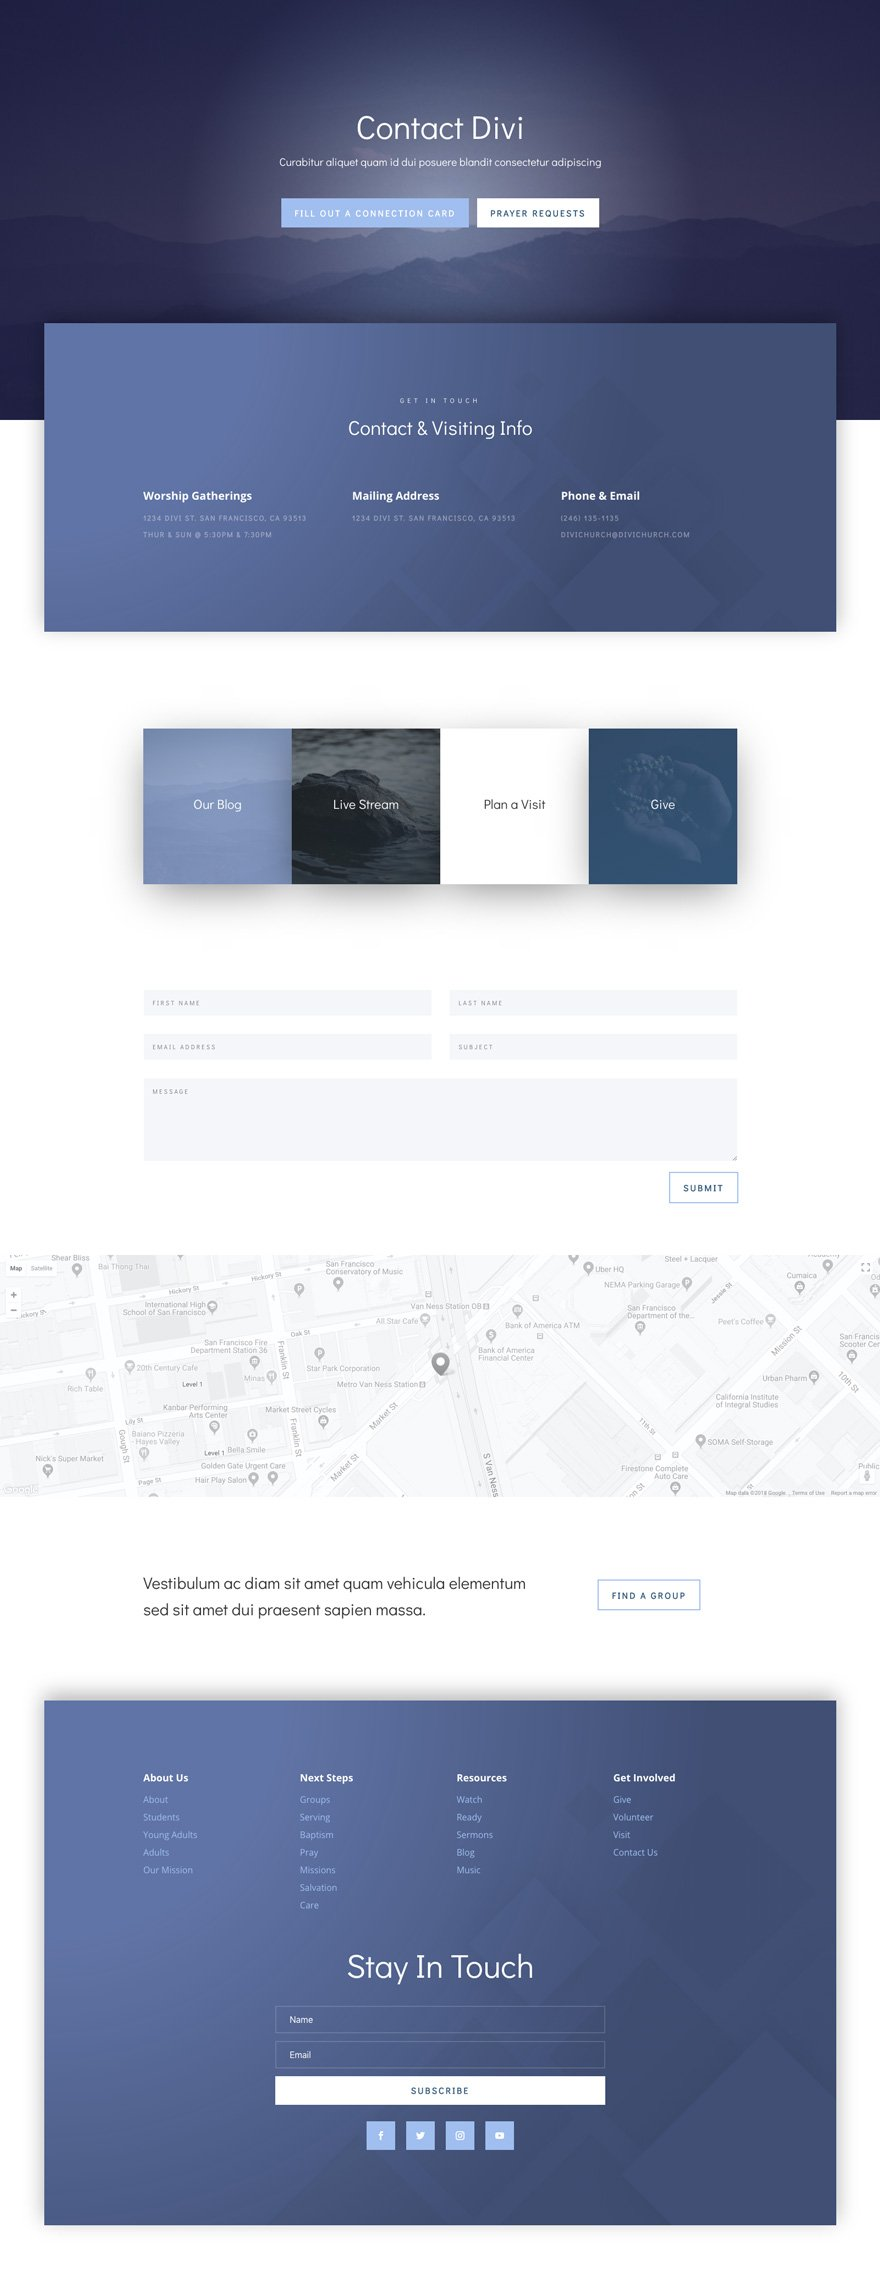 divi church layout pack